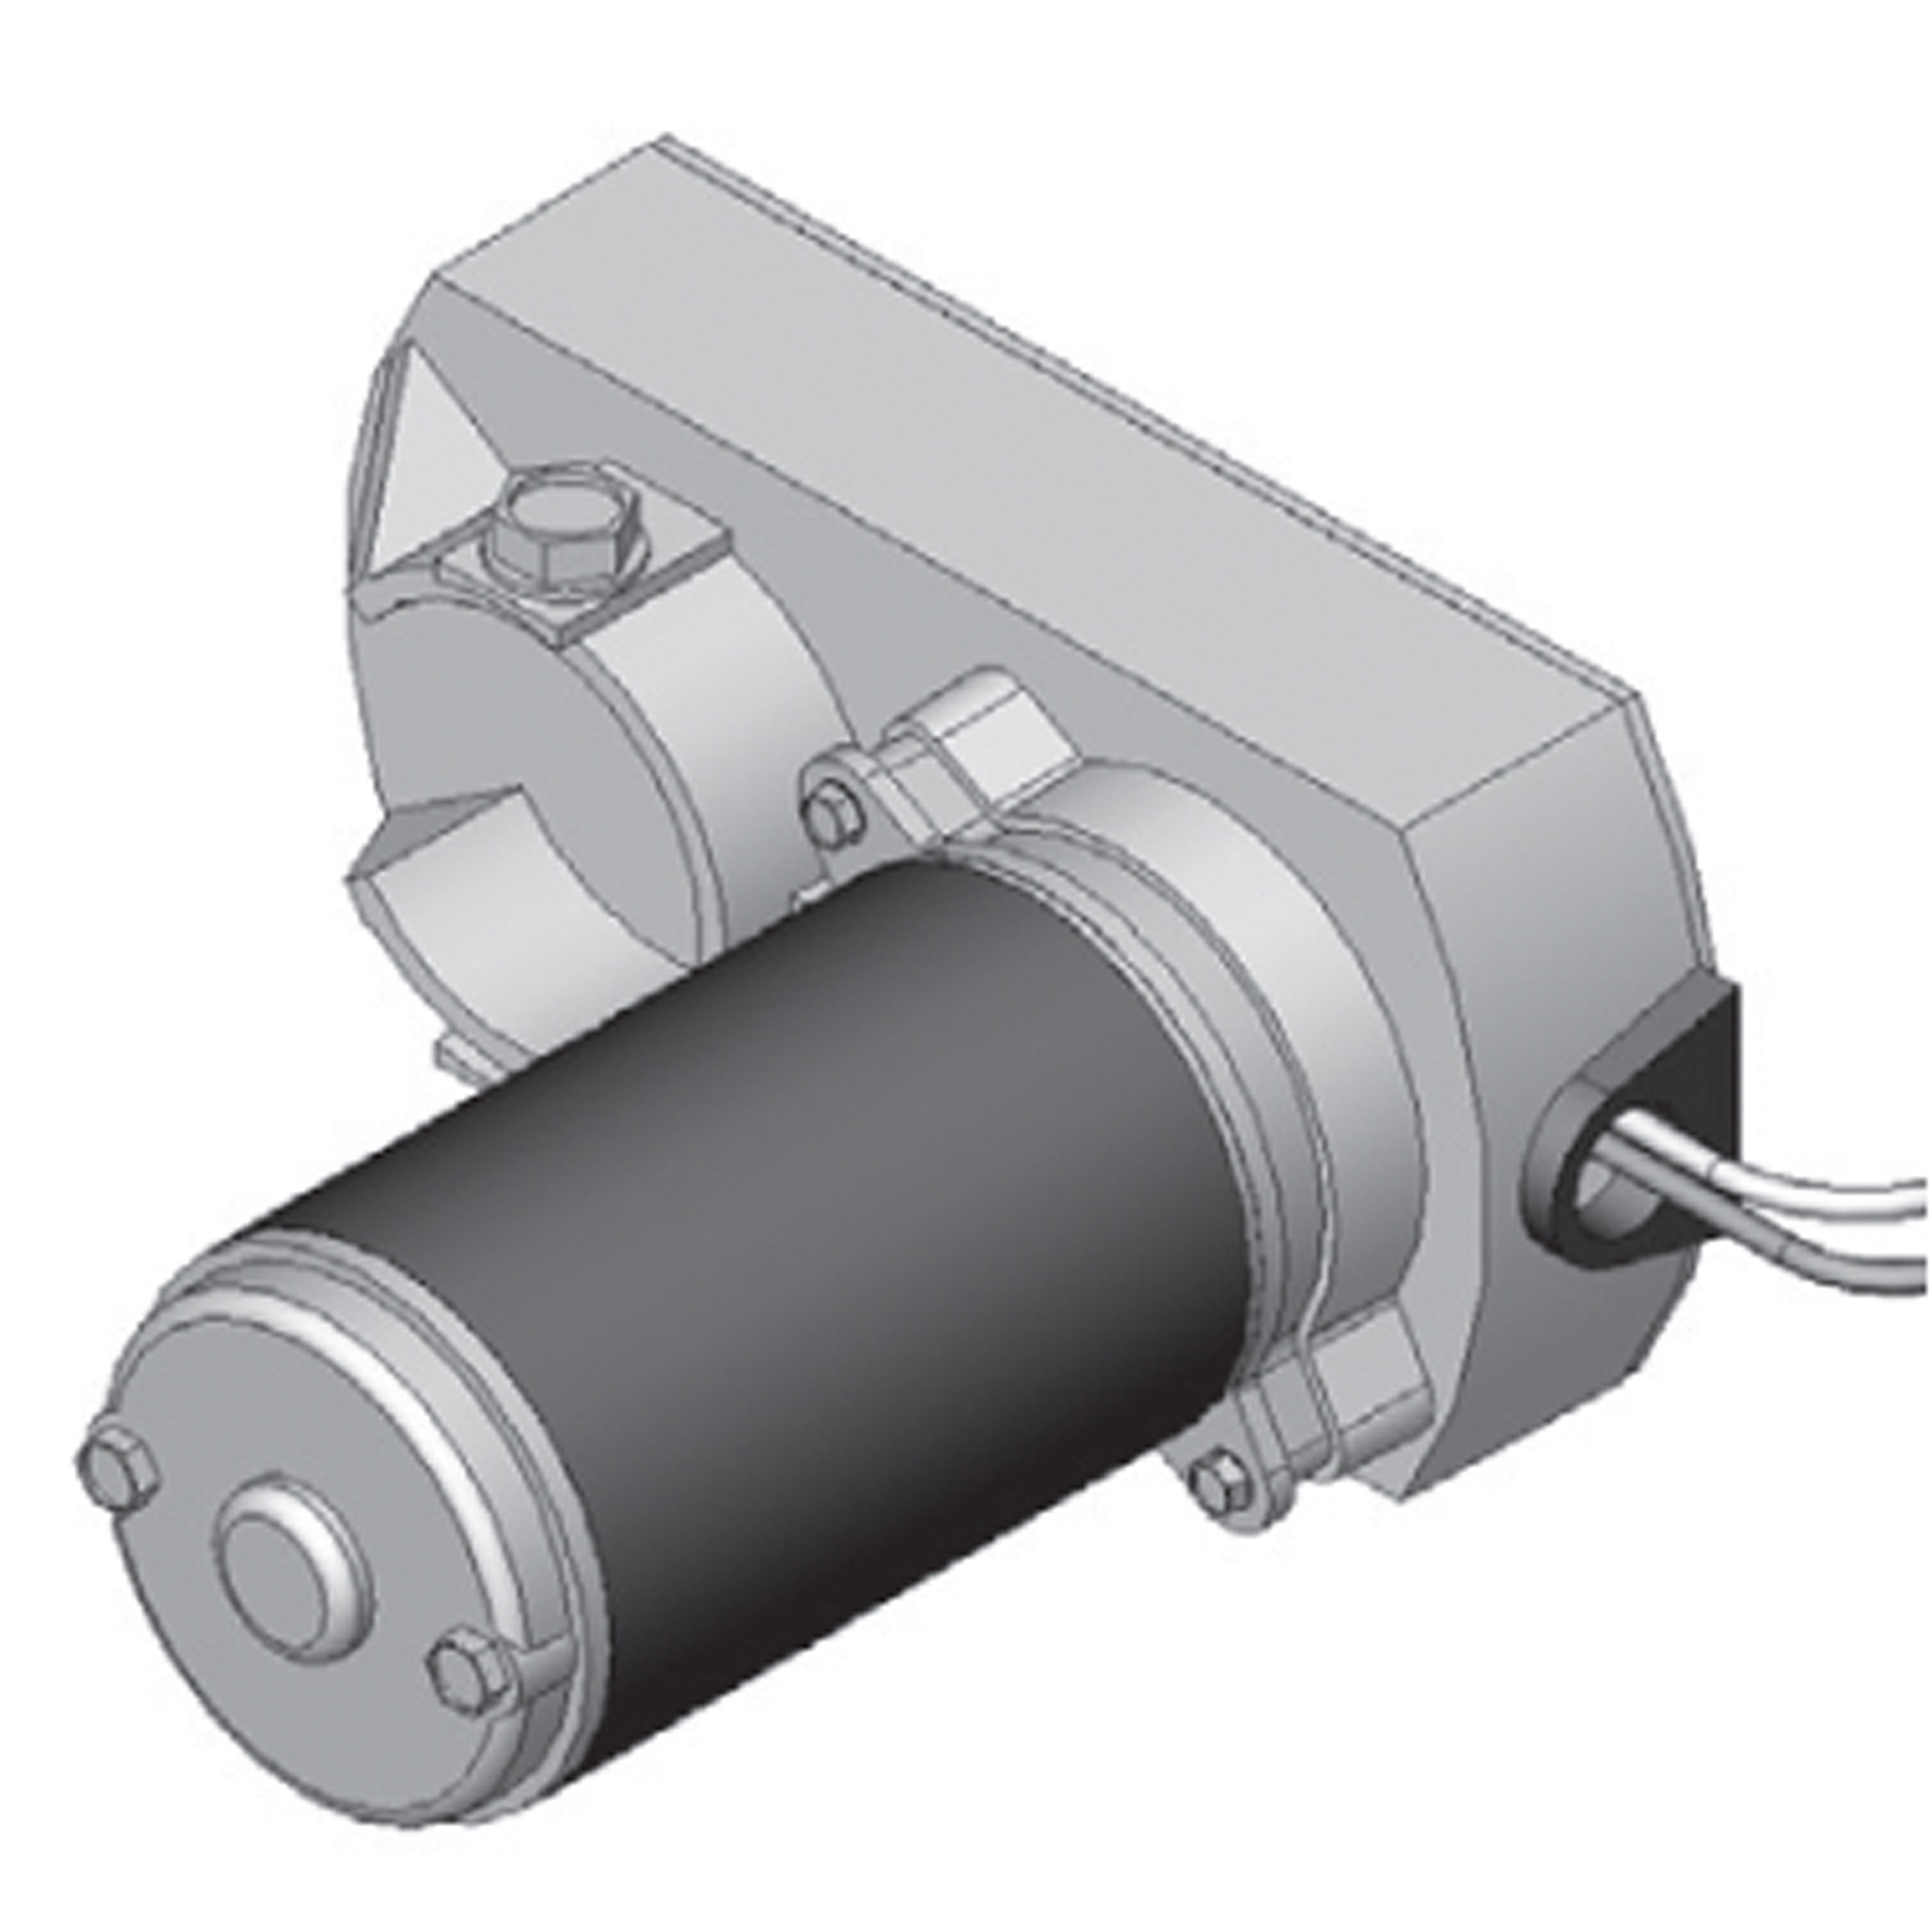 AP Products 014-136373 28:1 Venture RV Actuator Motor